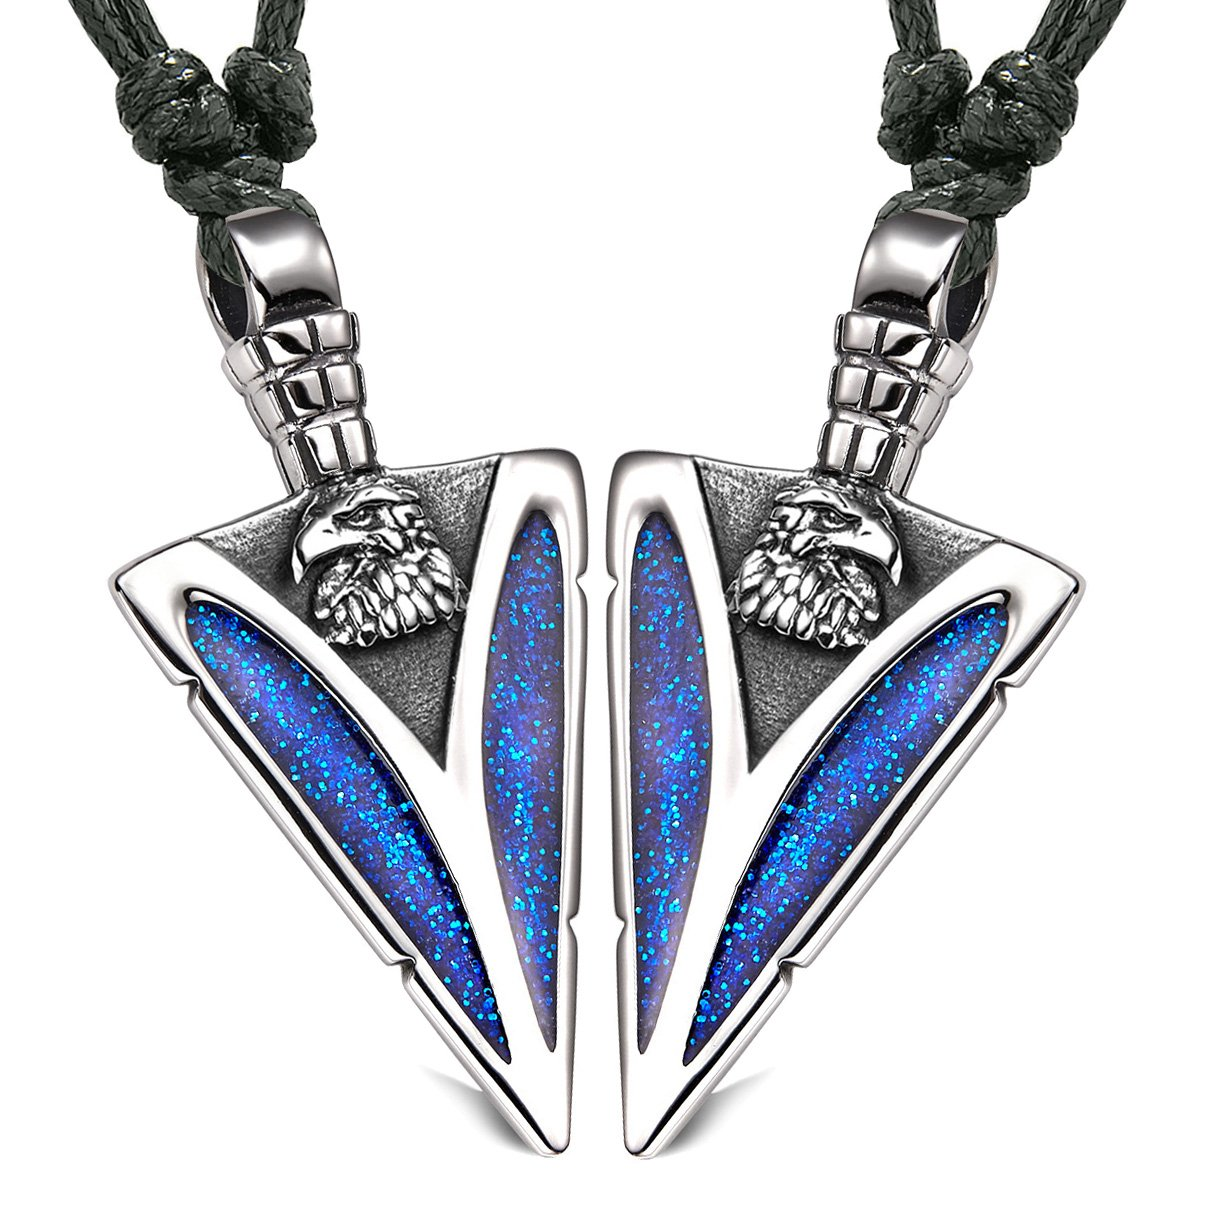 Arrowhead Wild American Eagle Head Love Couples or BFF Set Amulets Sparkling Blue Adjustable Necklaces